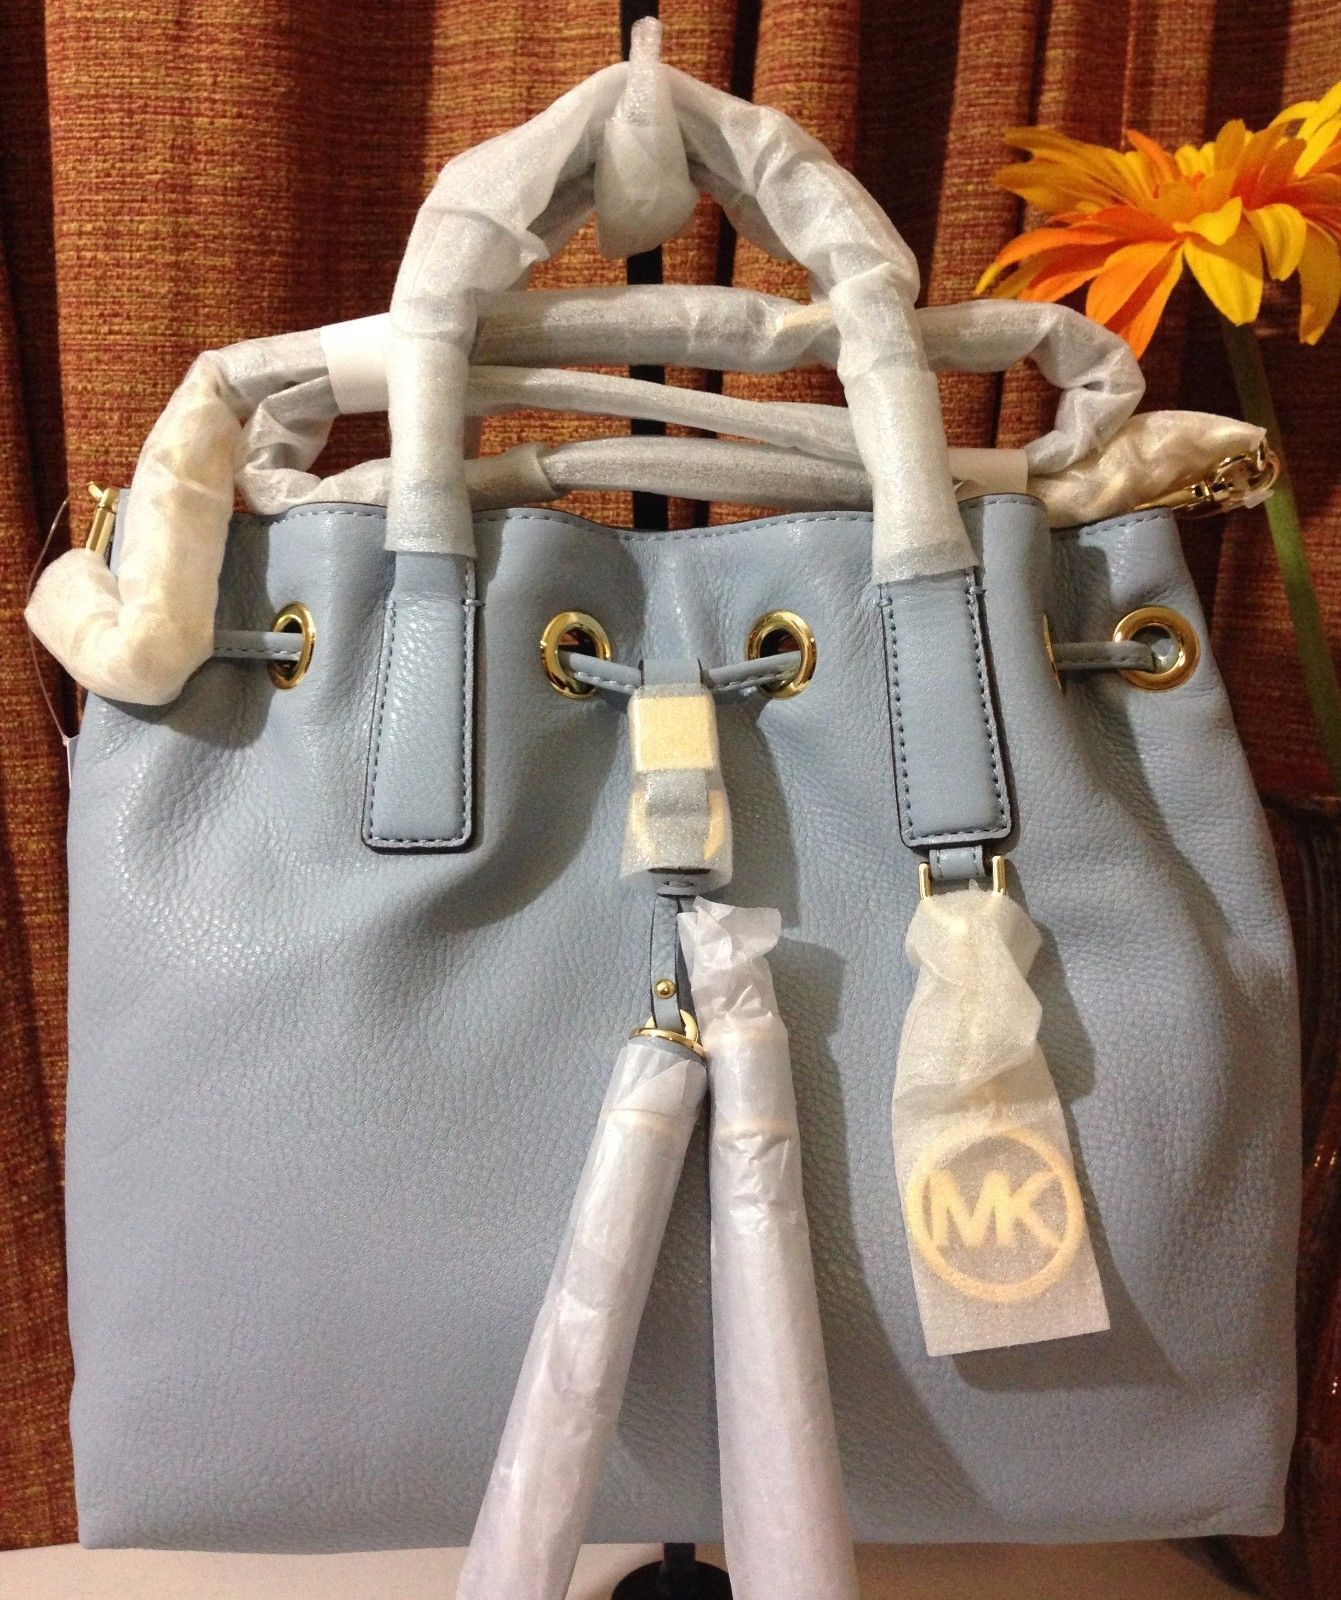 NWT MICHAEL MICHAEL KORS Camden Medium Leather Drawstring Satchel Pale Blue $358